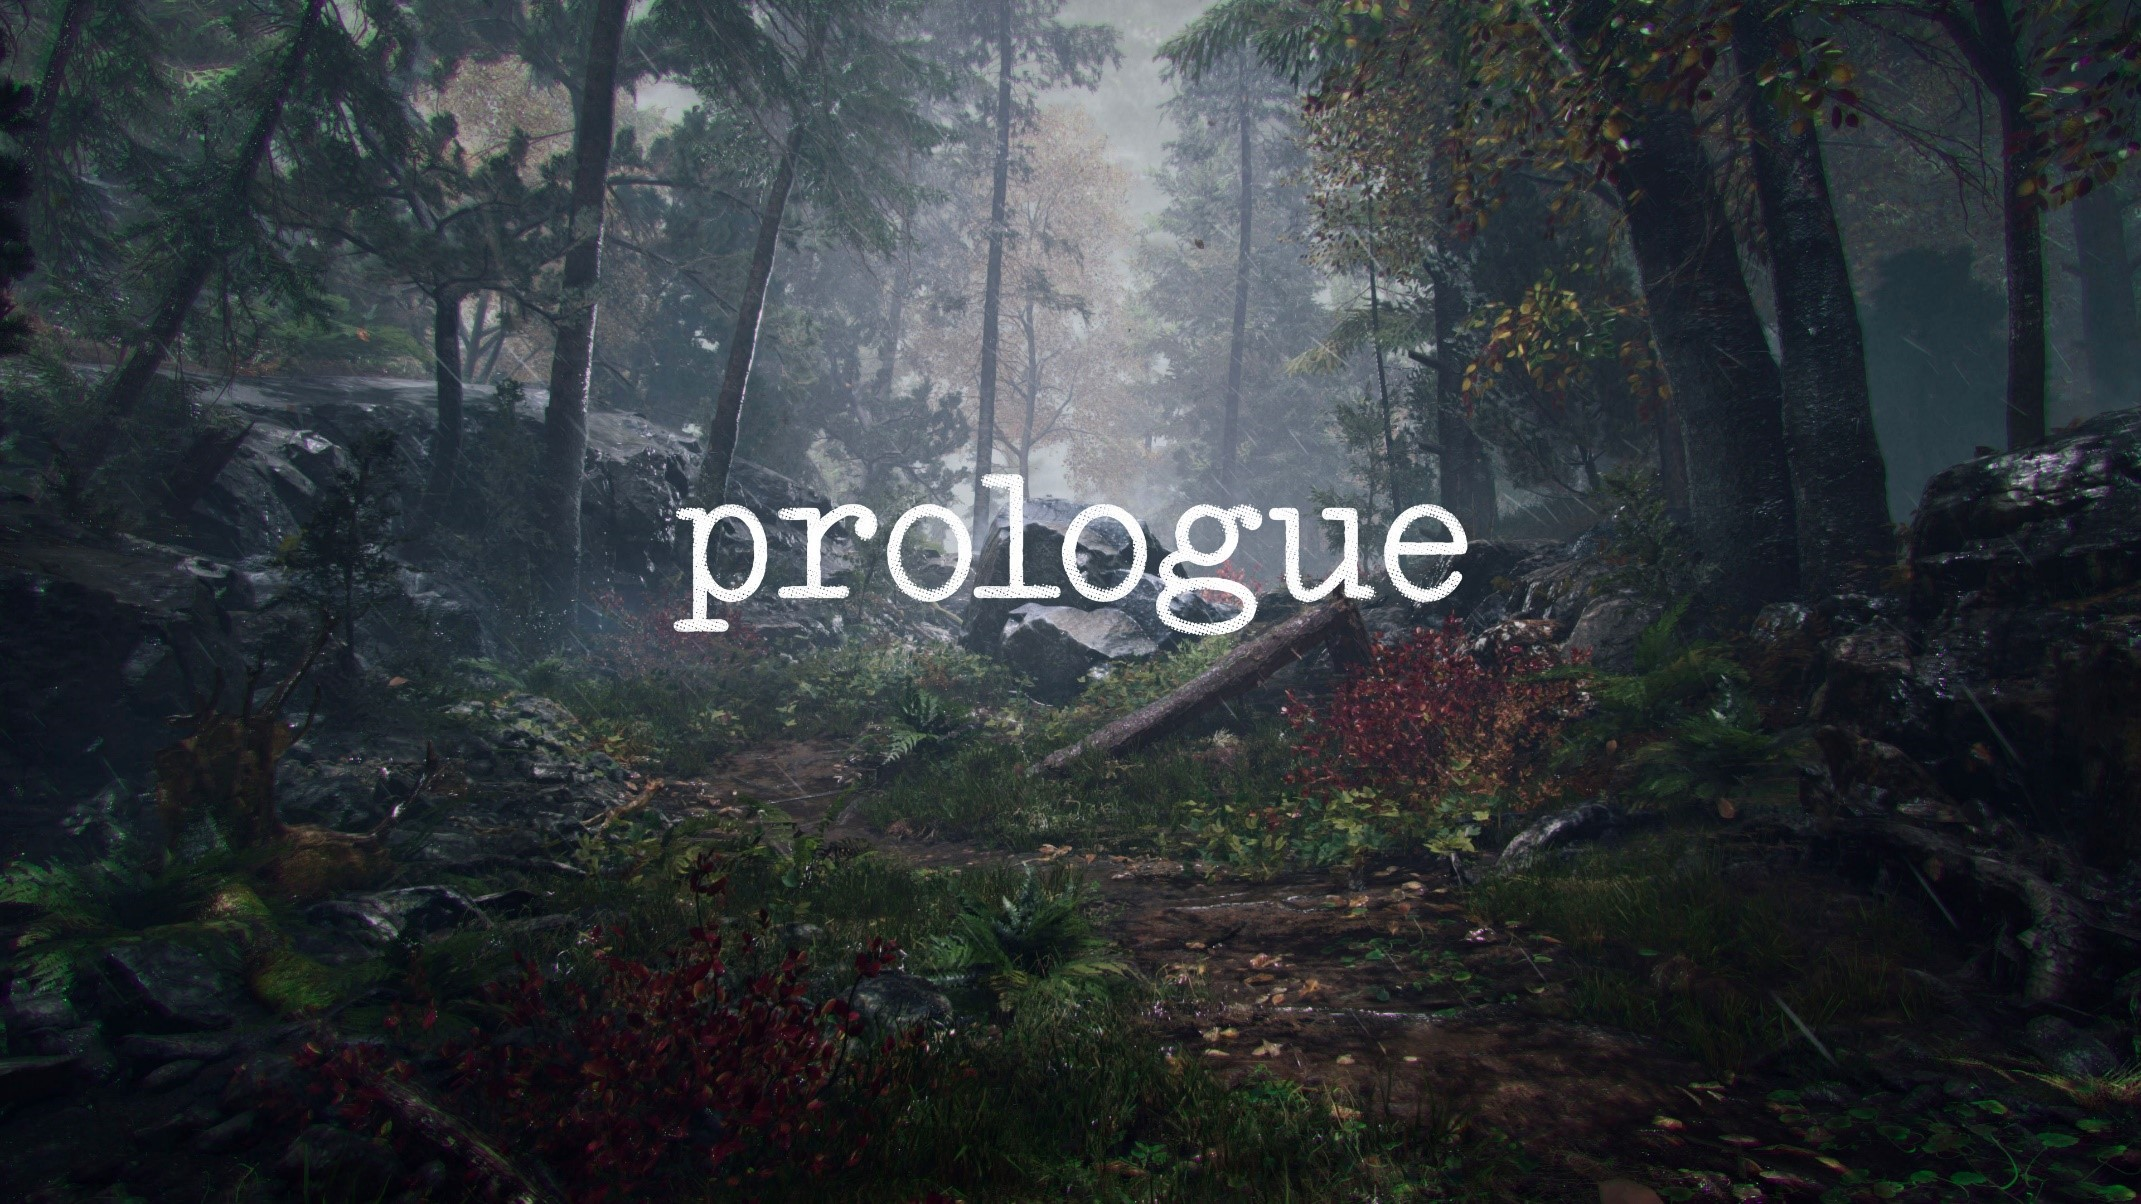 When is PlayerUnknown's new game Prologue releasing?